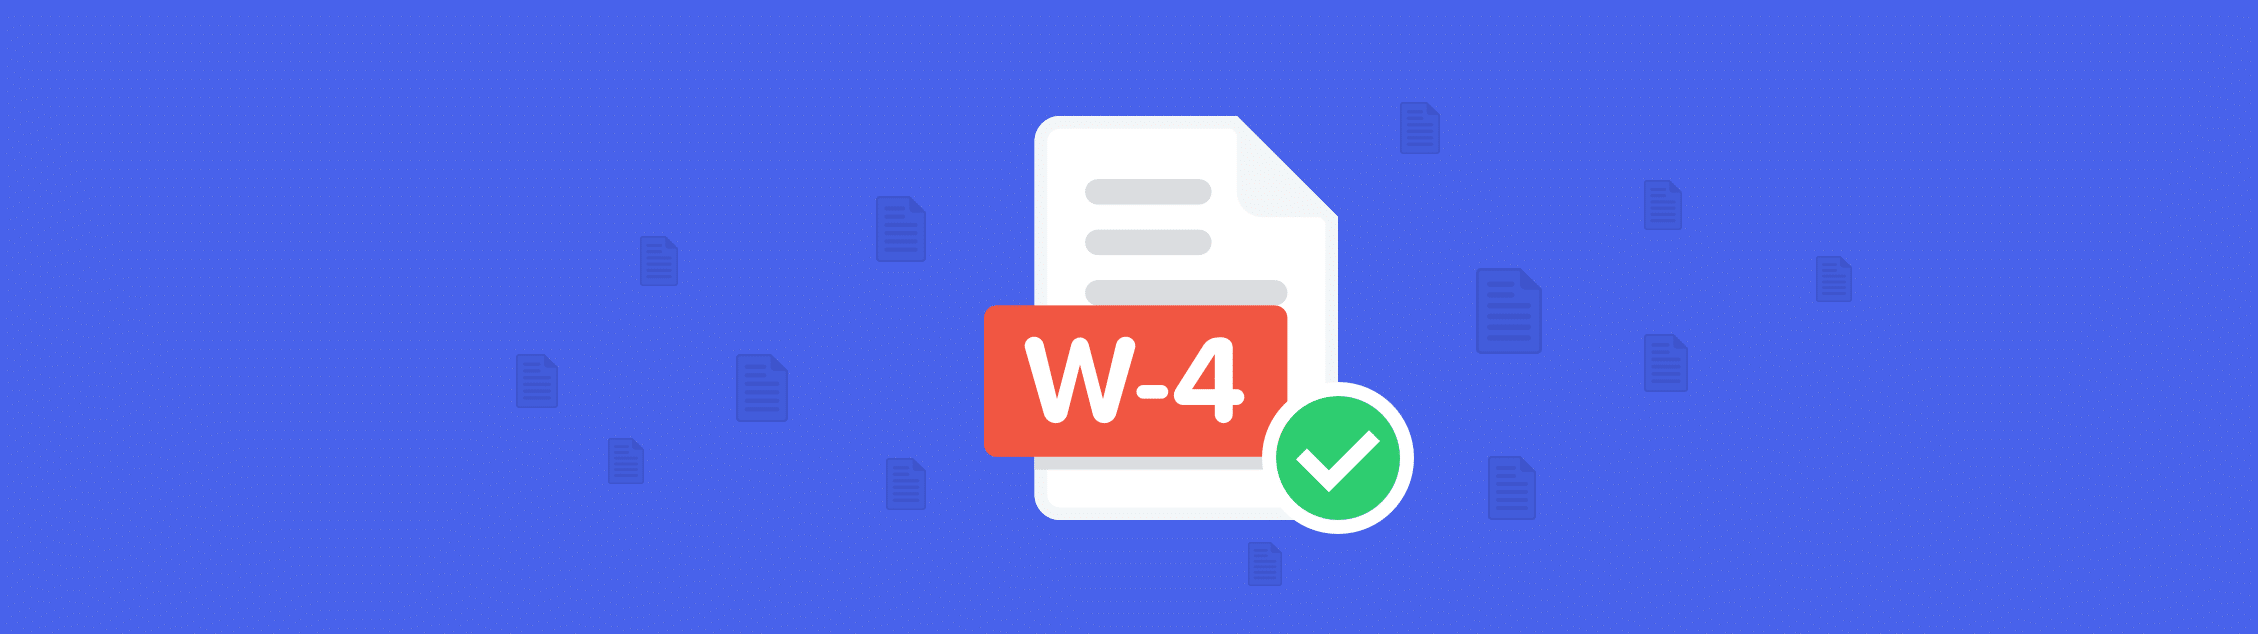 maximum exemptions on w4 form